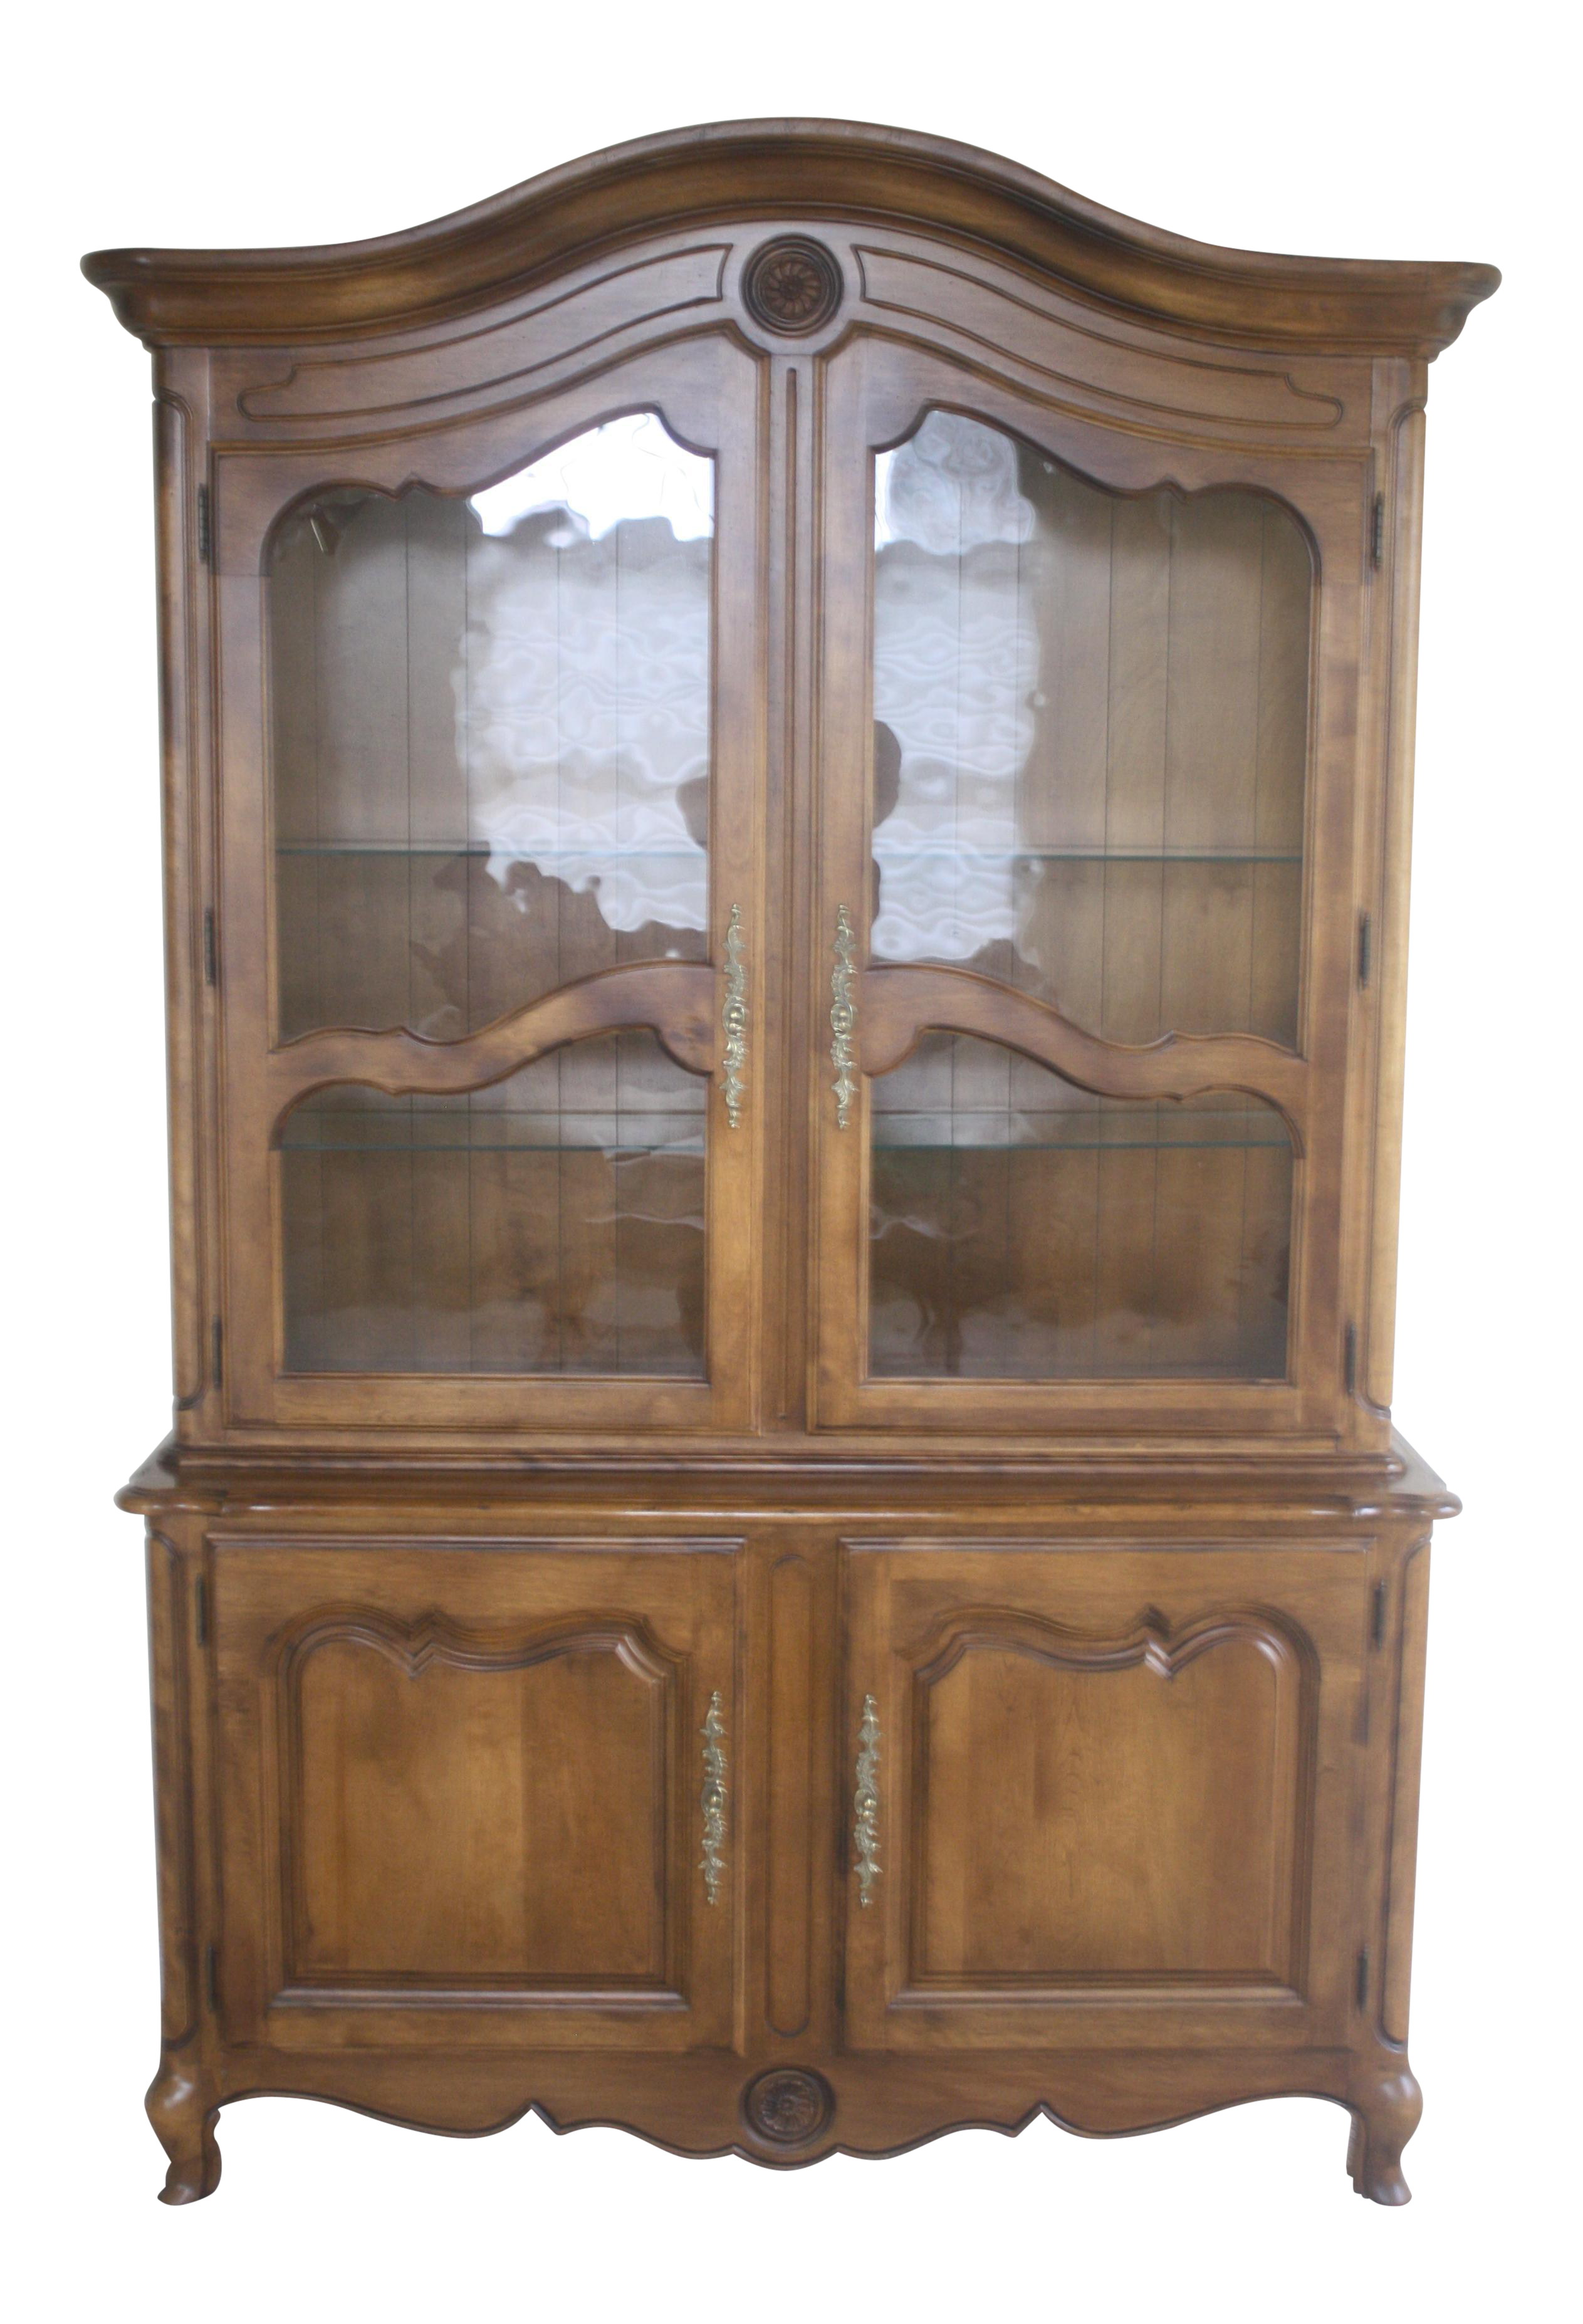 French country china cabinets - French Country China Cabinets 12